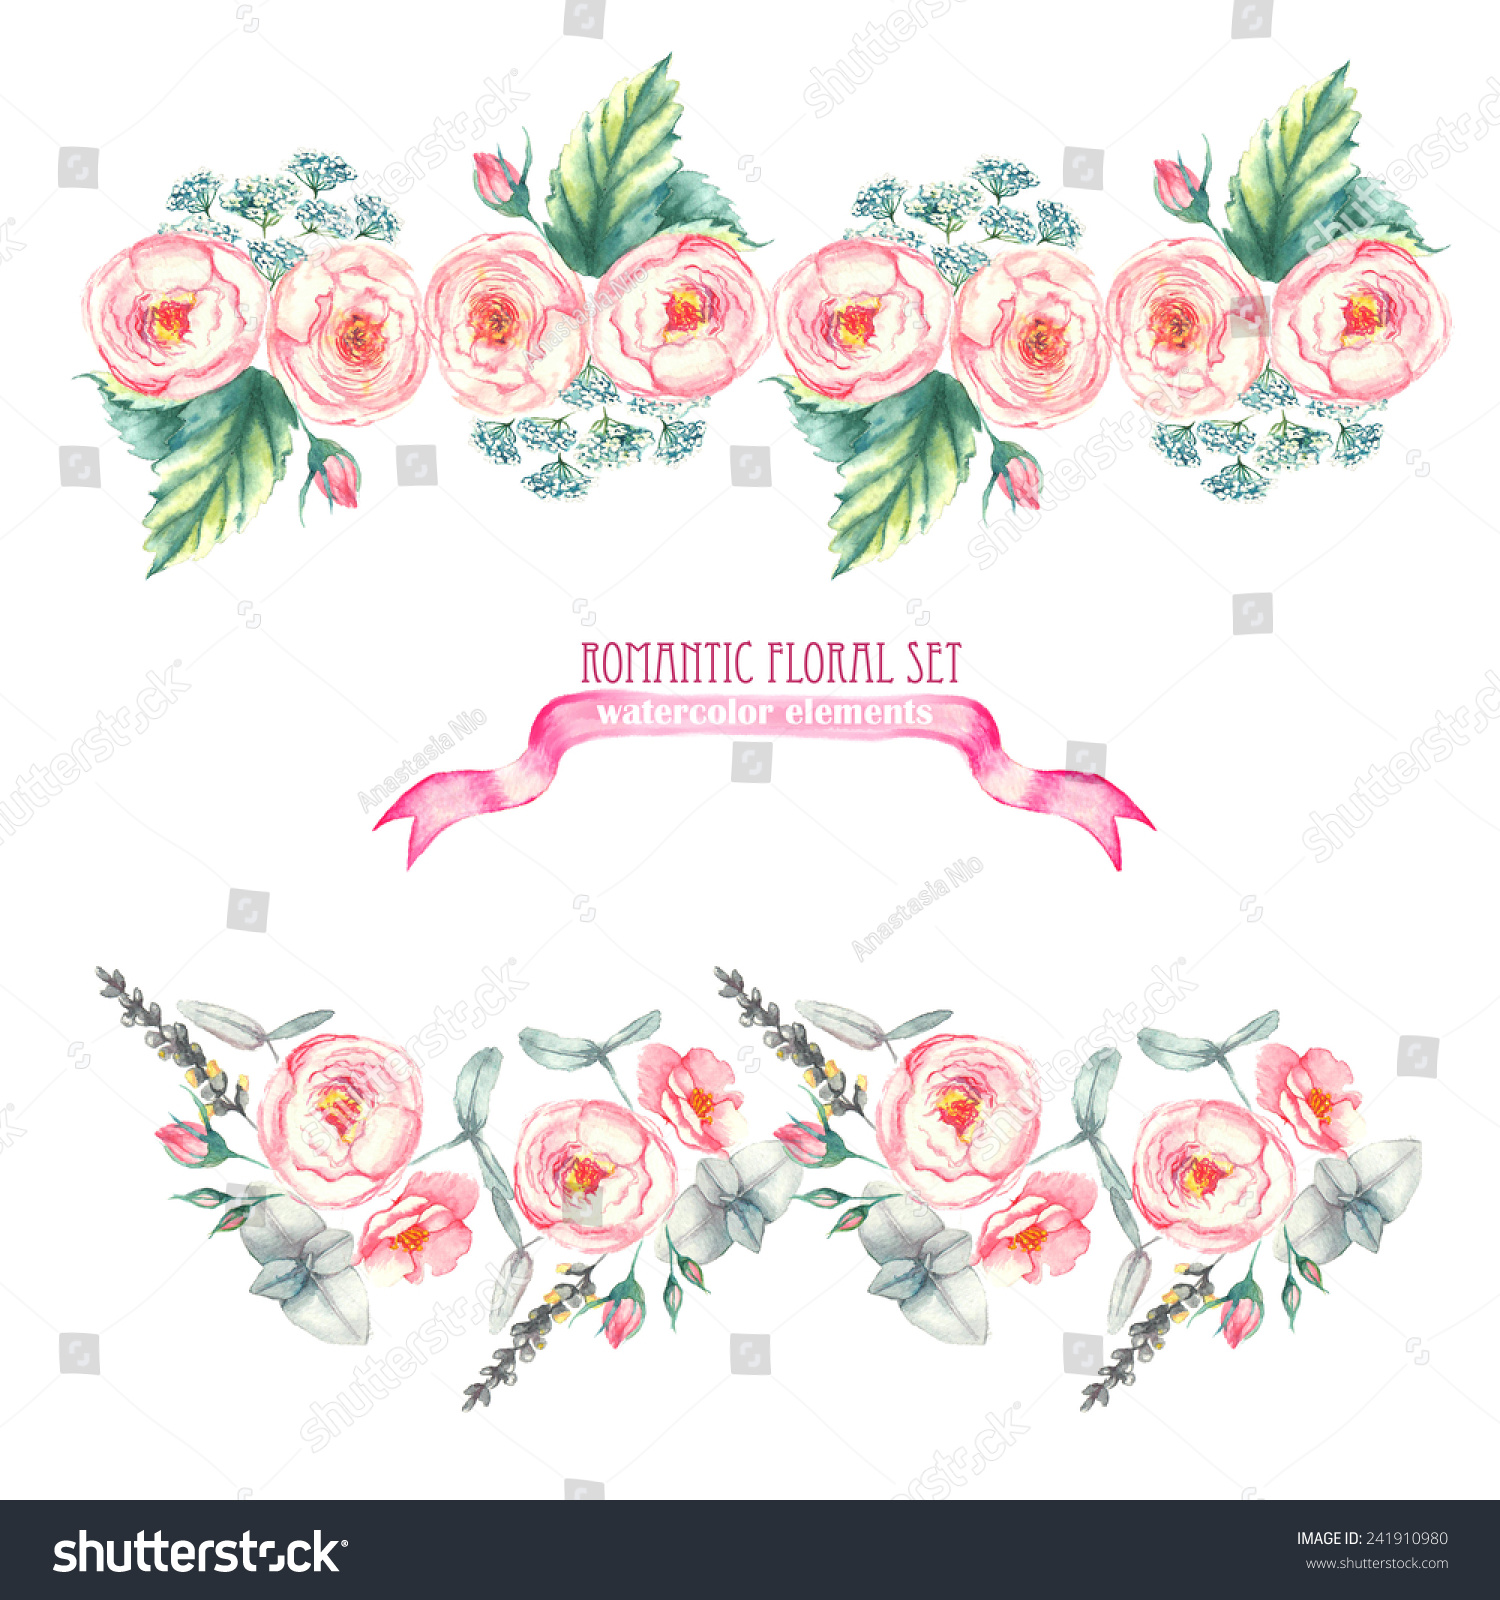 Hand Drawn Watercolor Isolated Romantic Floral Compositions Made